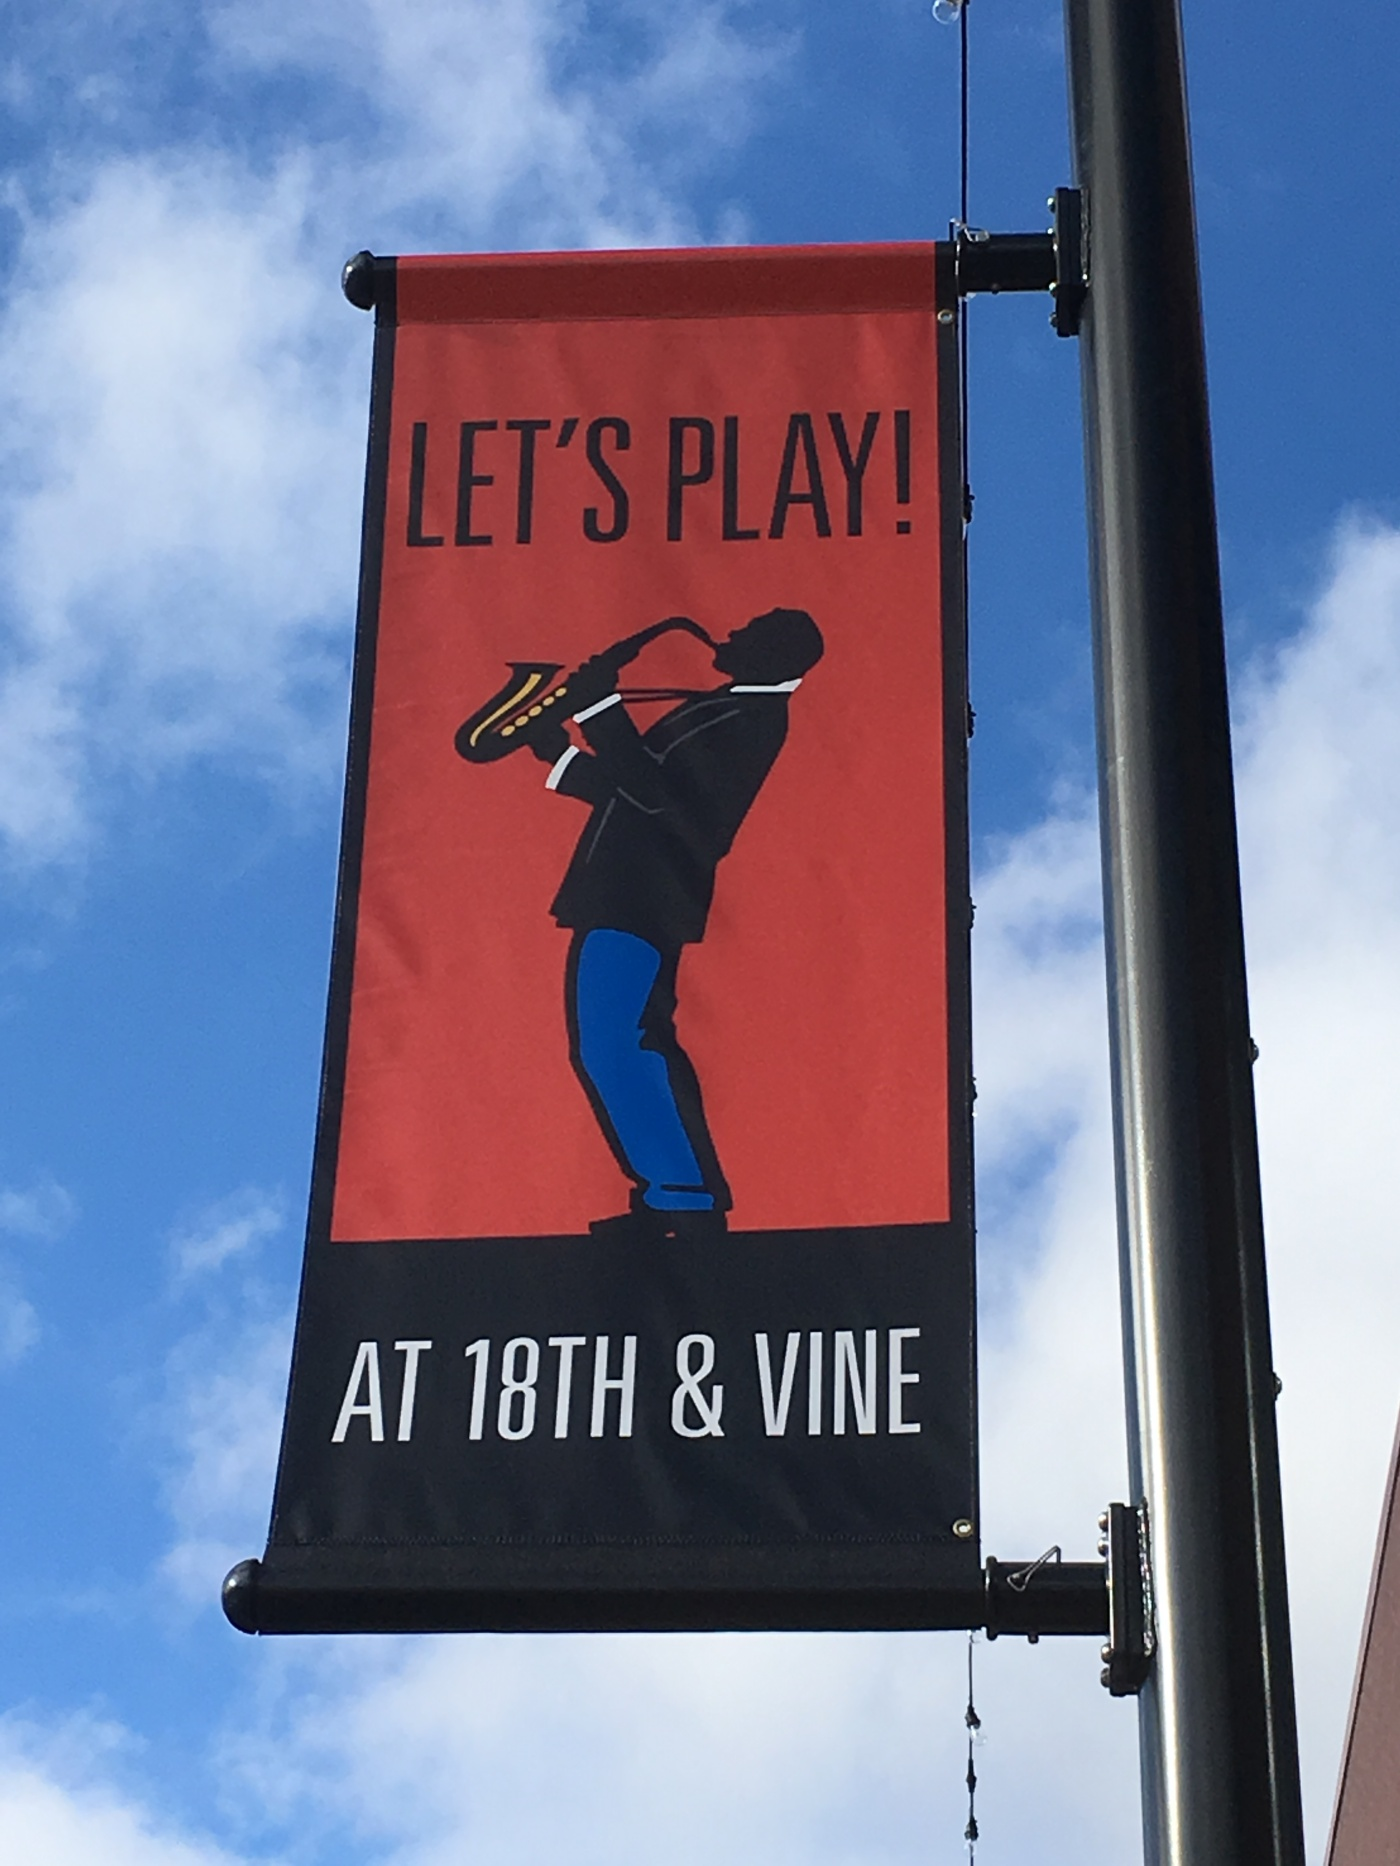 Let's Play Jazz at 18th & Vine